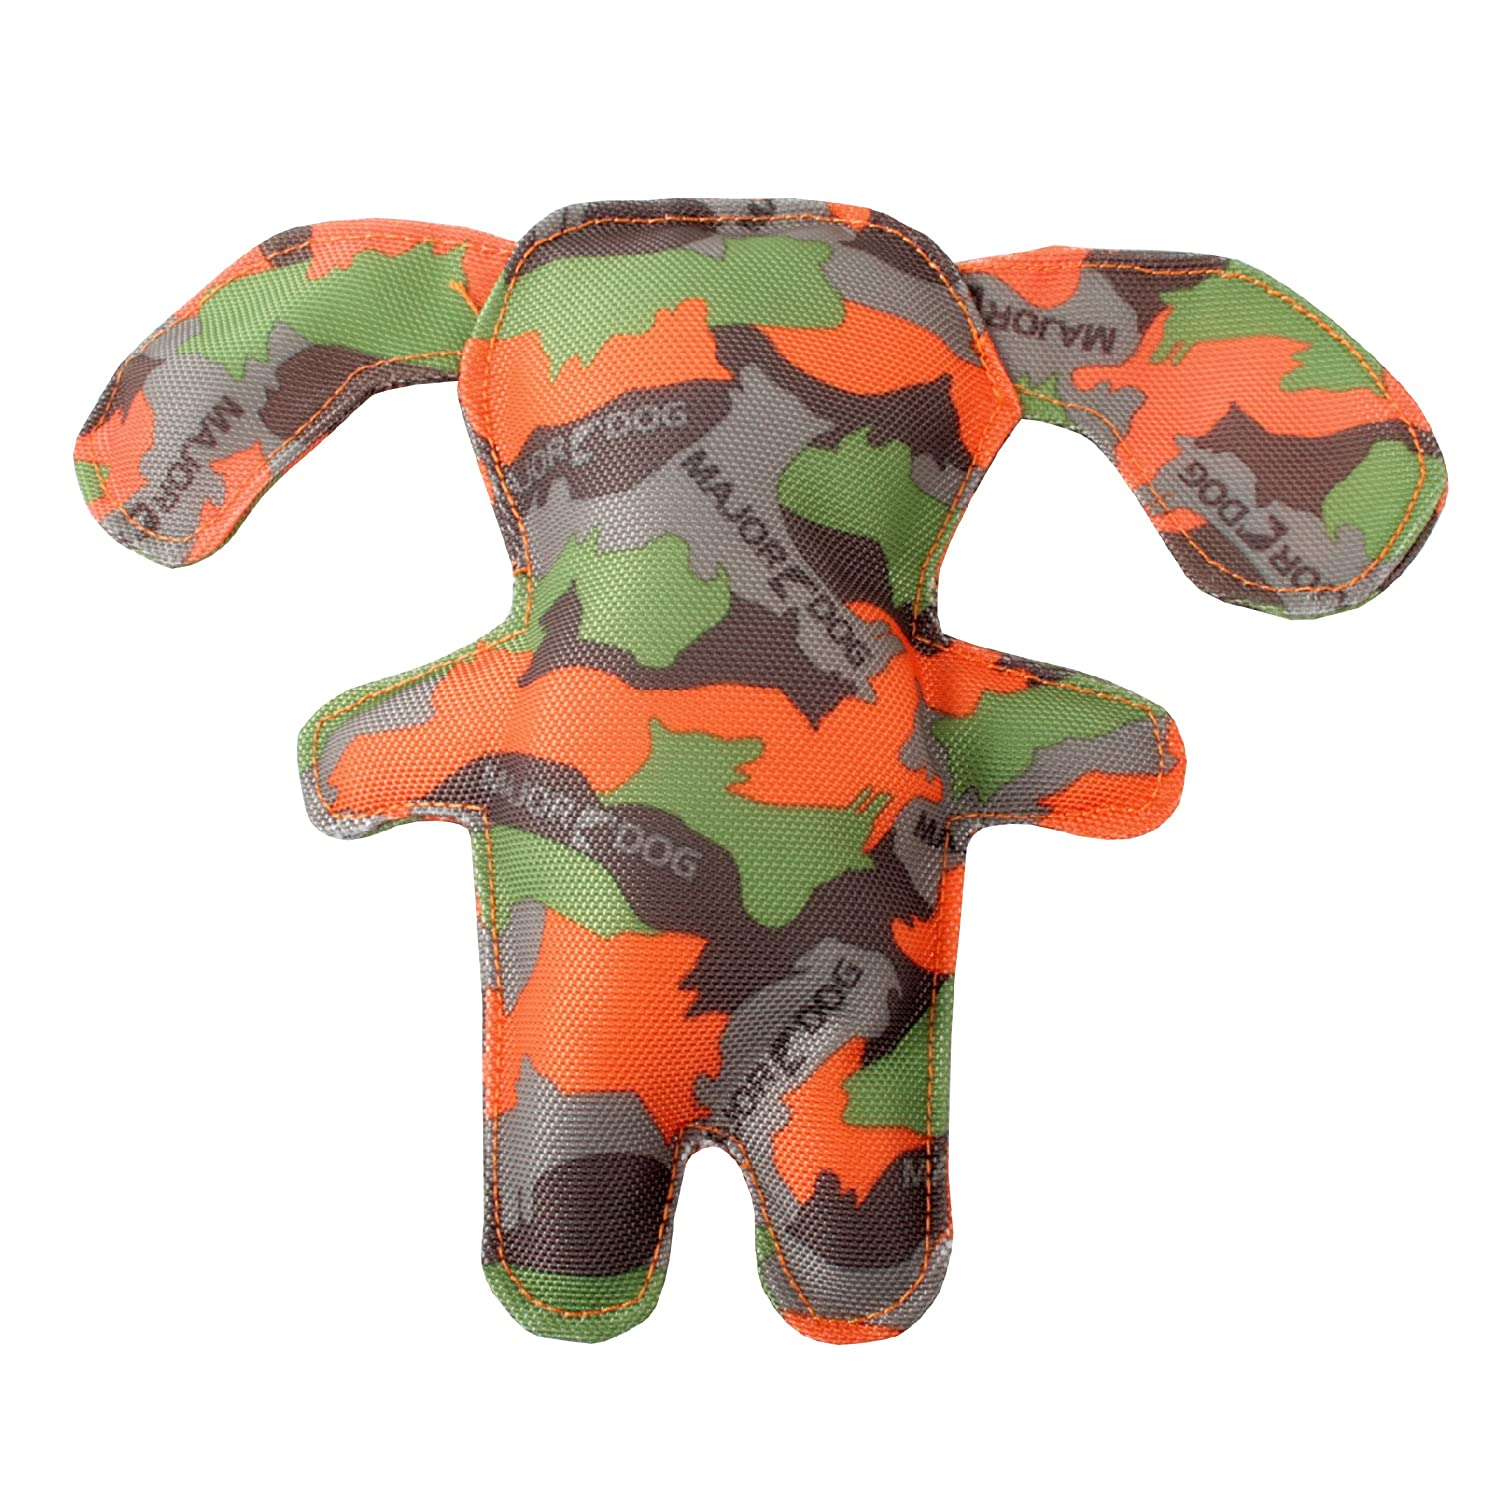 """'Major Dog """"Waldi Mini Schwimmfähiges Tough Dog Training Toy with Handle Grip–Robust and & Non-Toxic TÜV Certified (German) MJD31022"""